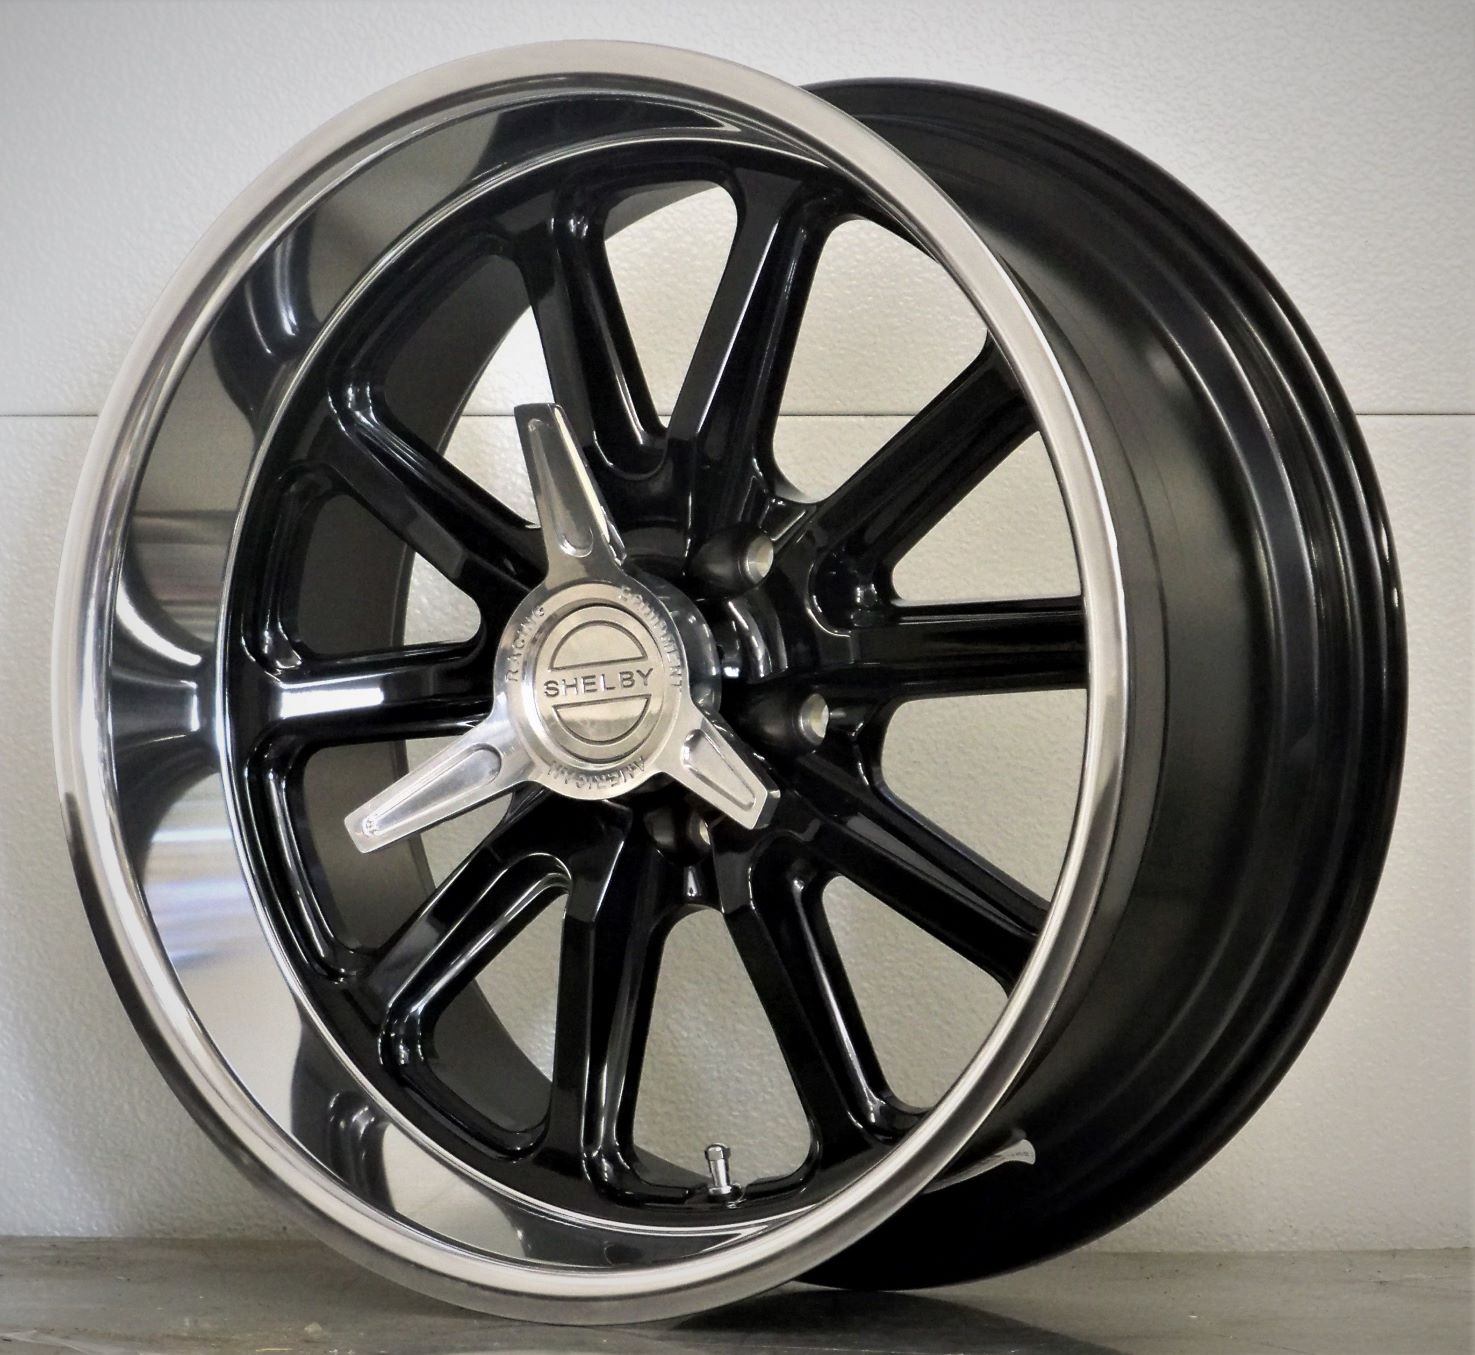 17/18 set of 4 RSB US Mags Shelby spinners gloss black 65-73